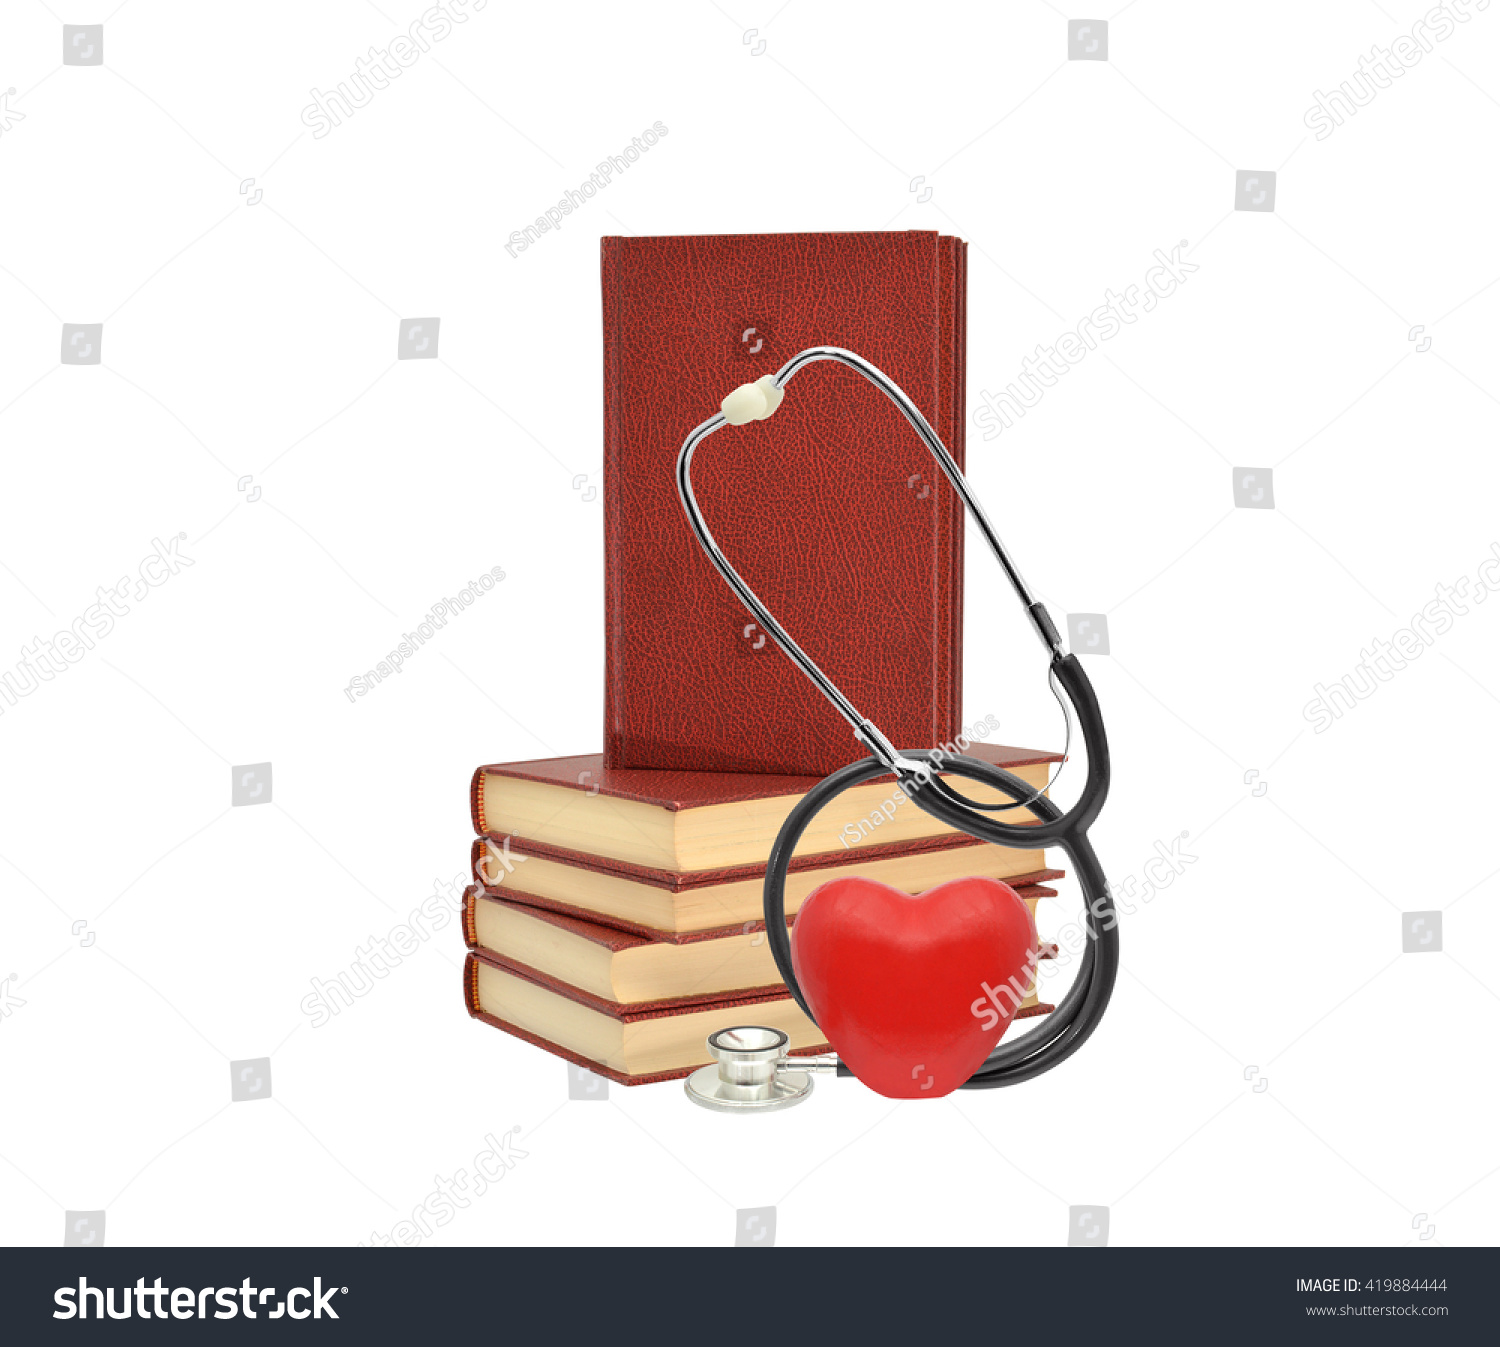 Red Heart Stethoscope Stack of Hard Cover Books isolated on white background